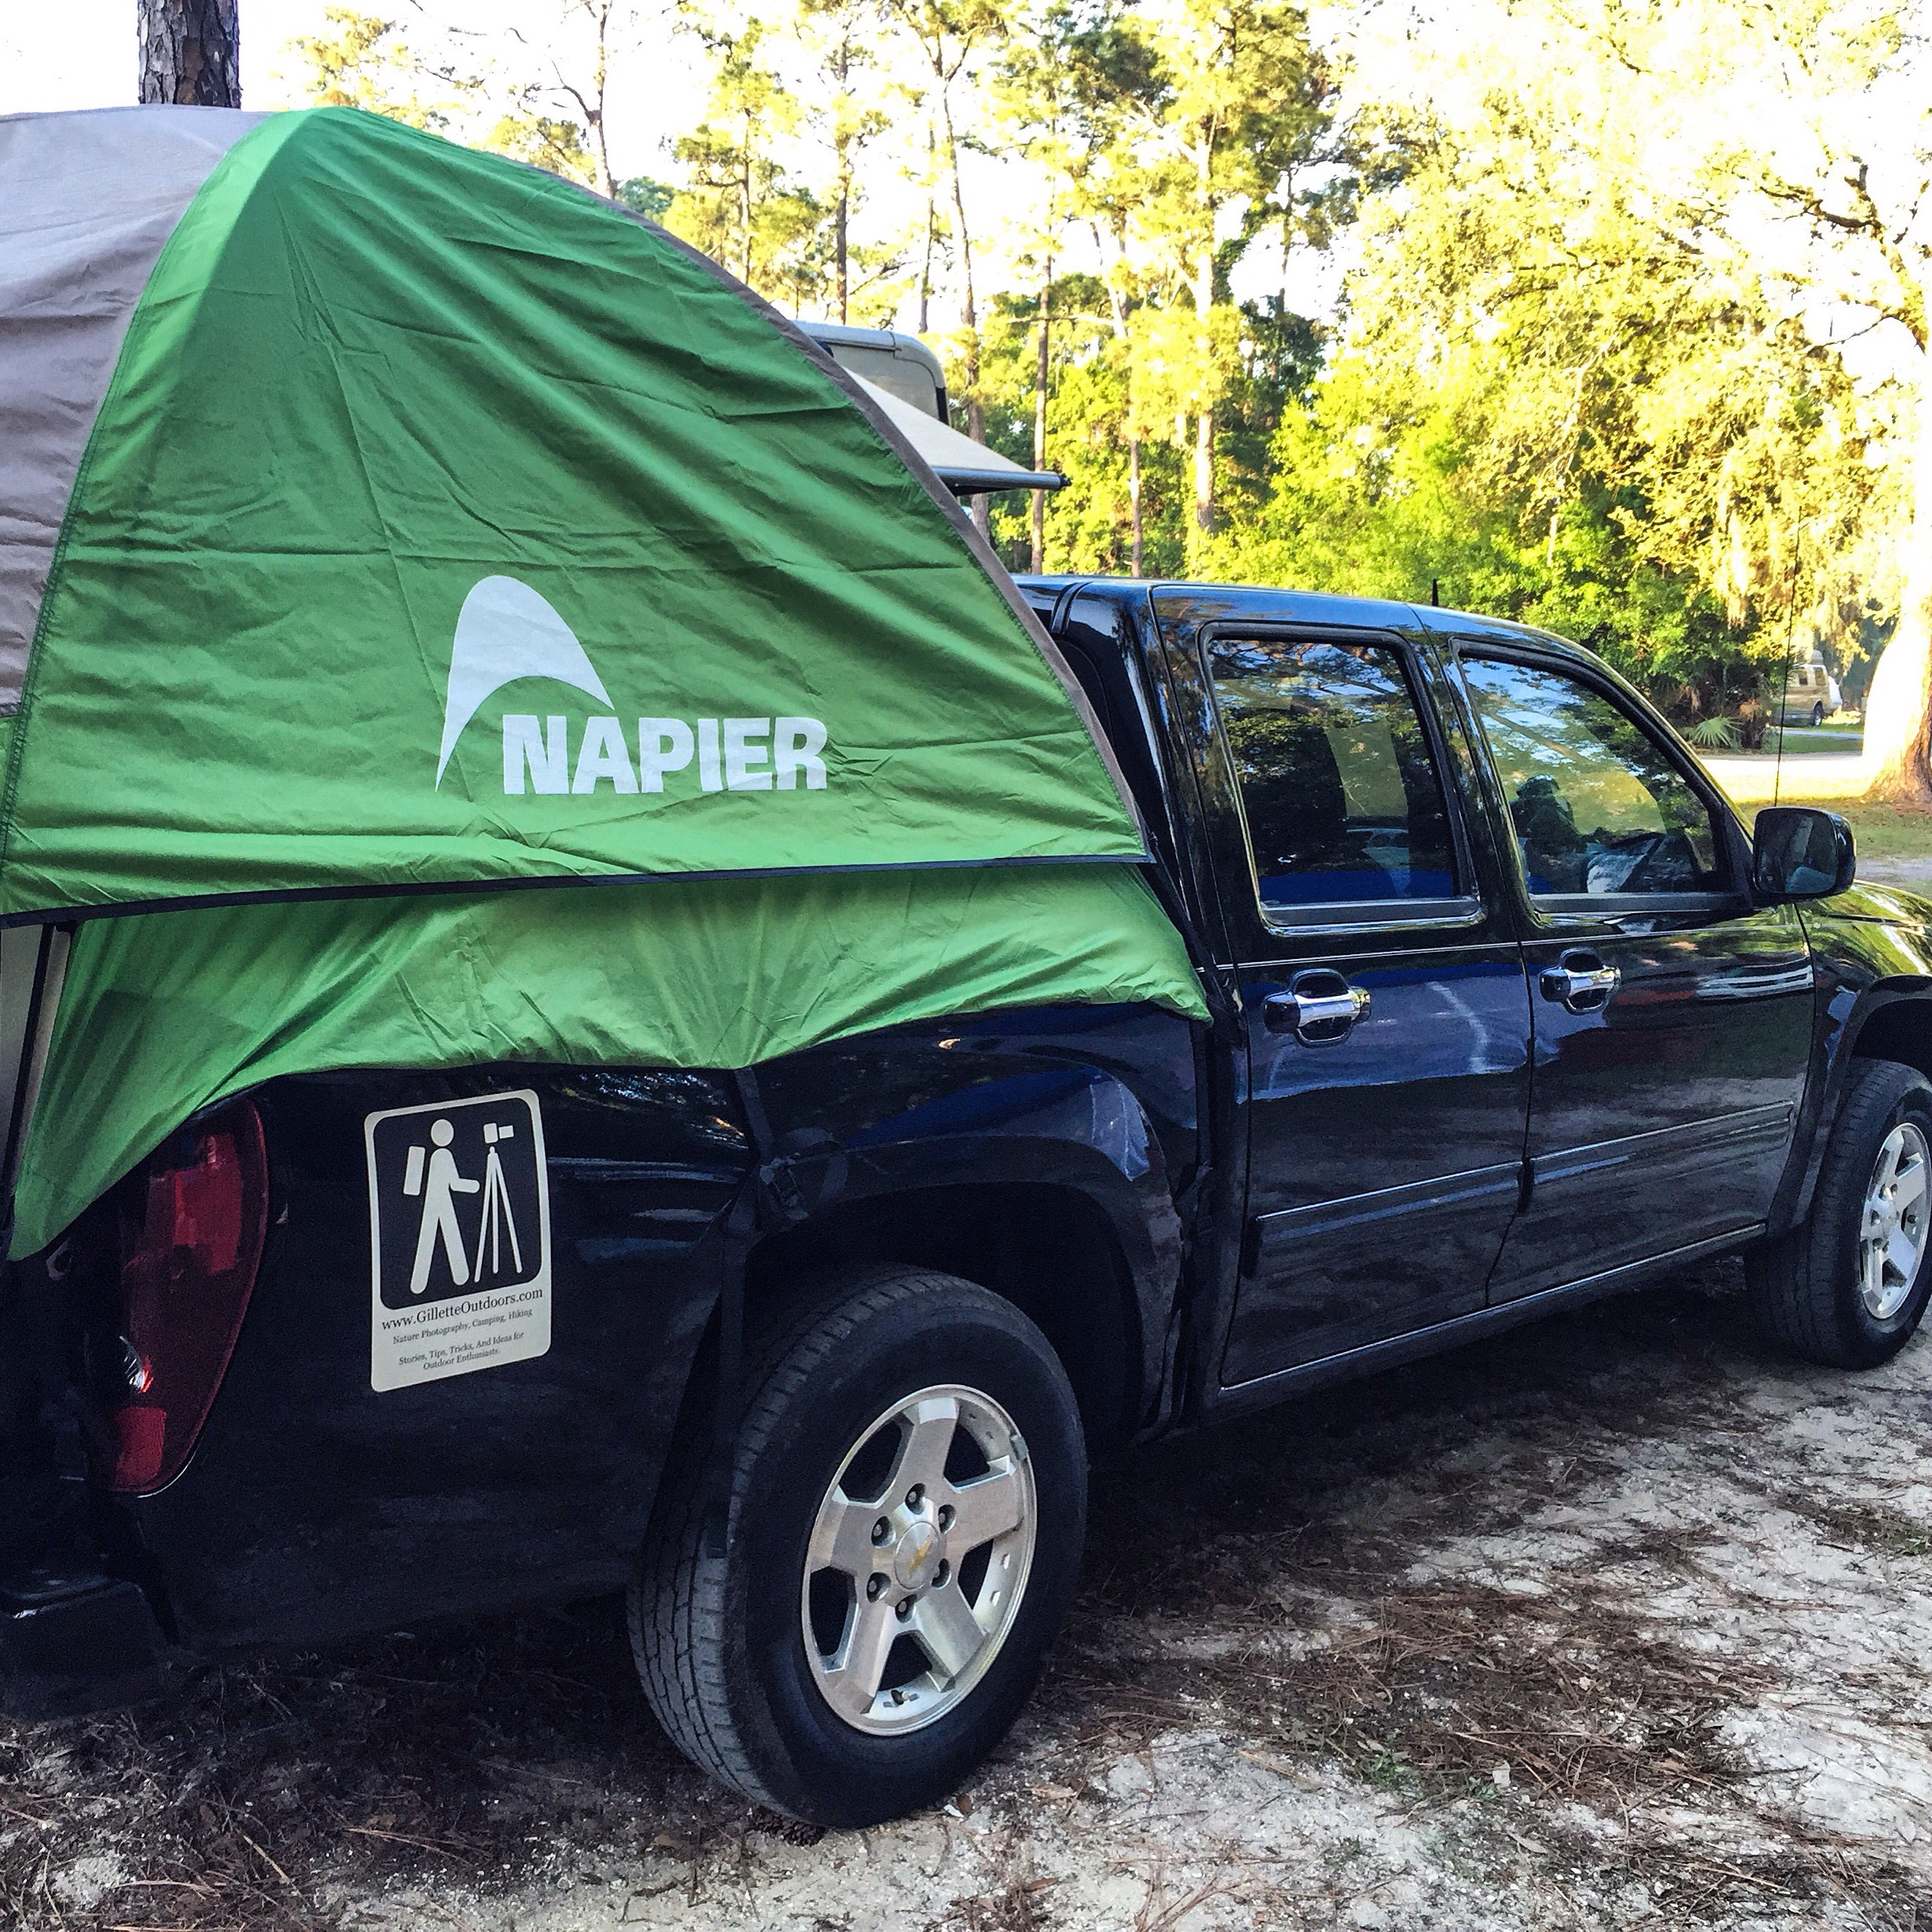 Napier truck tent with fly.